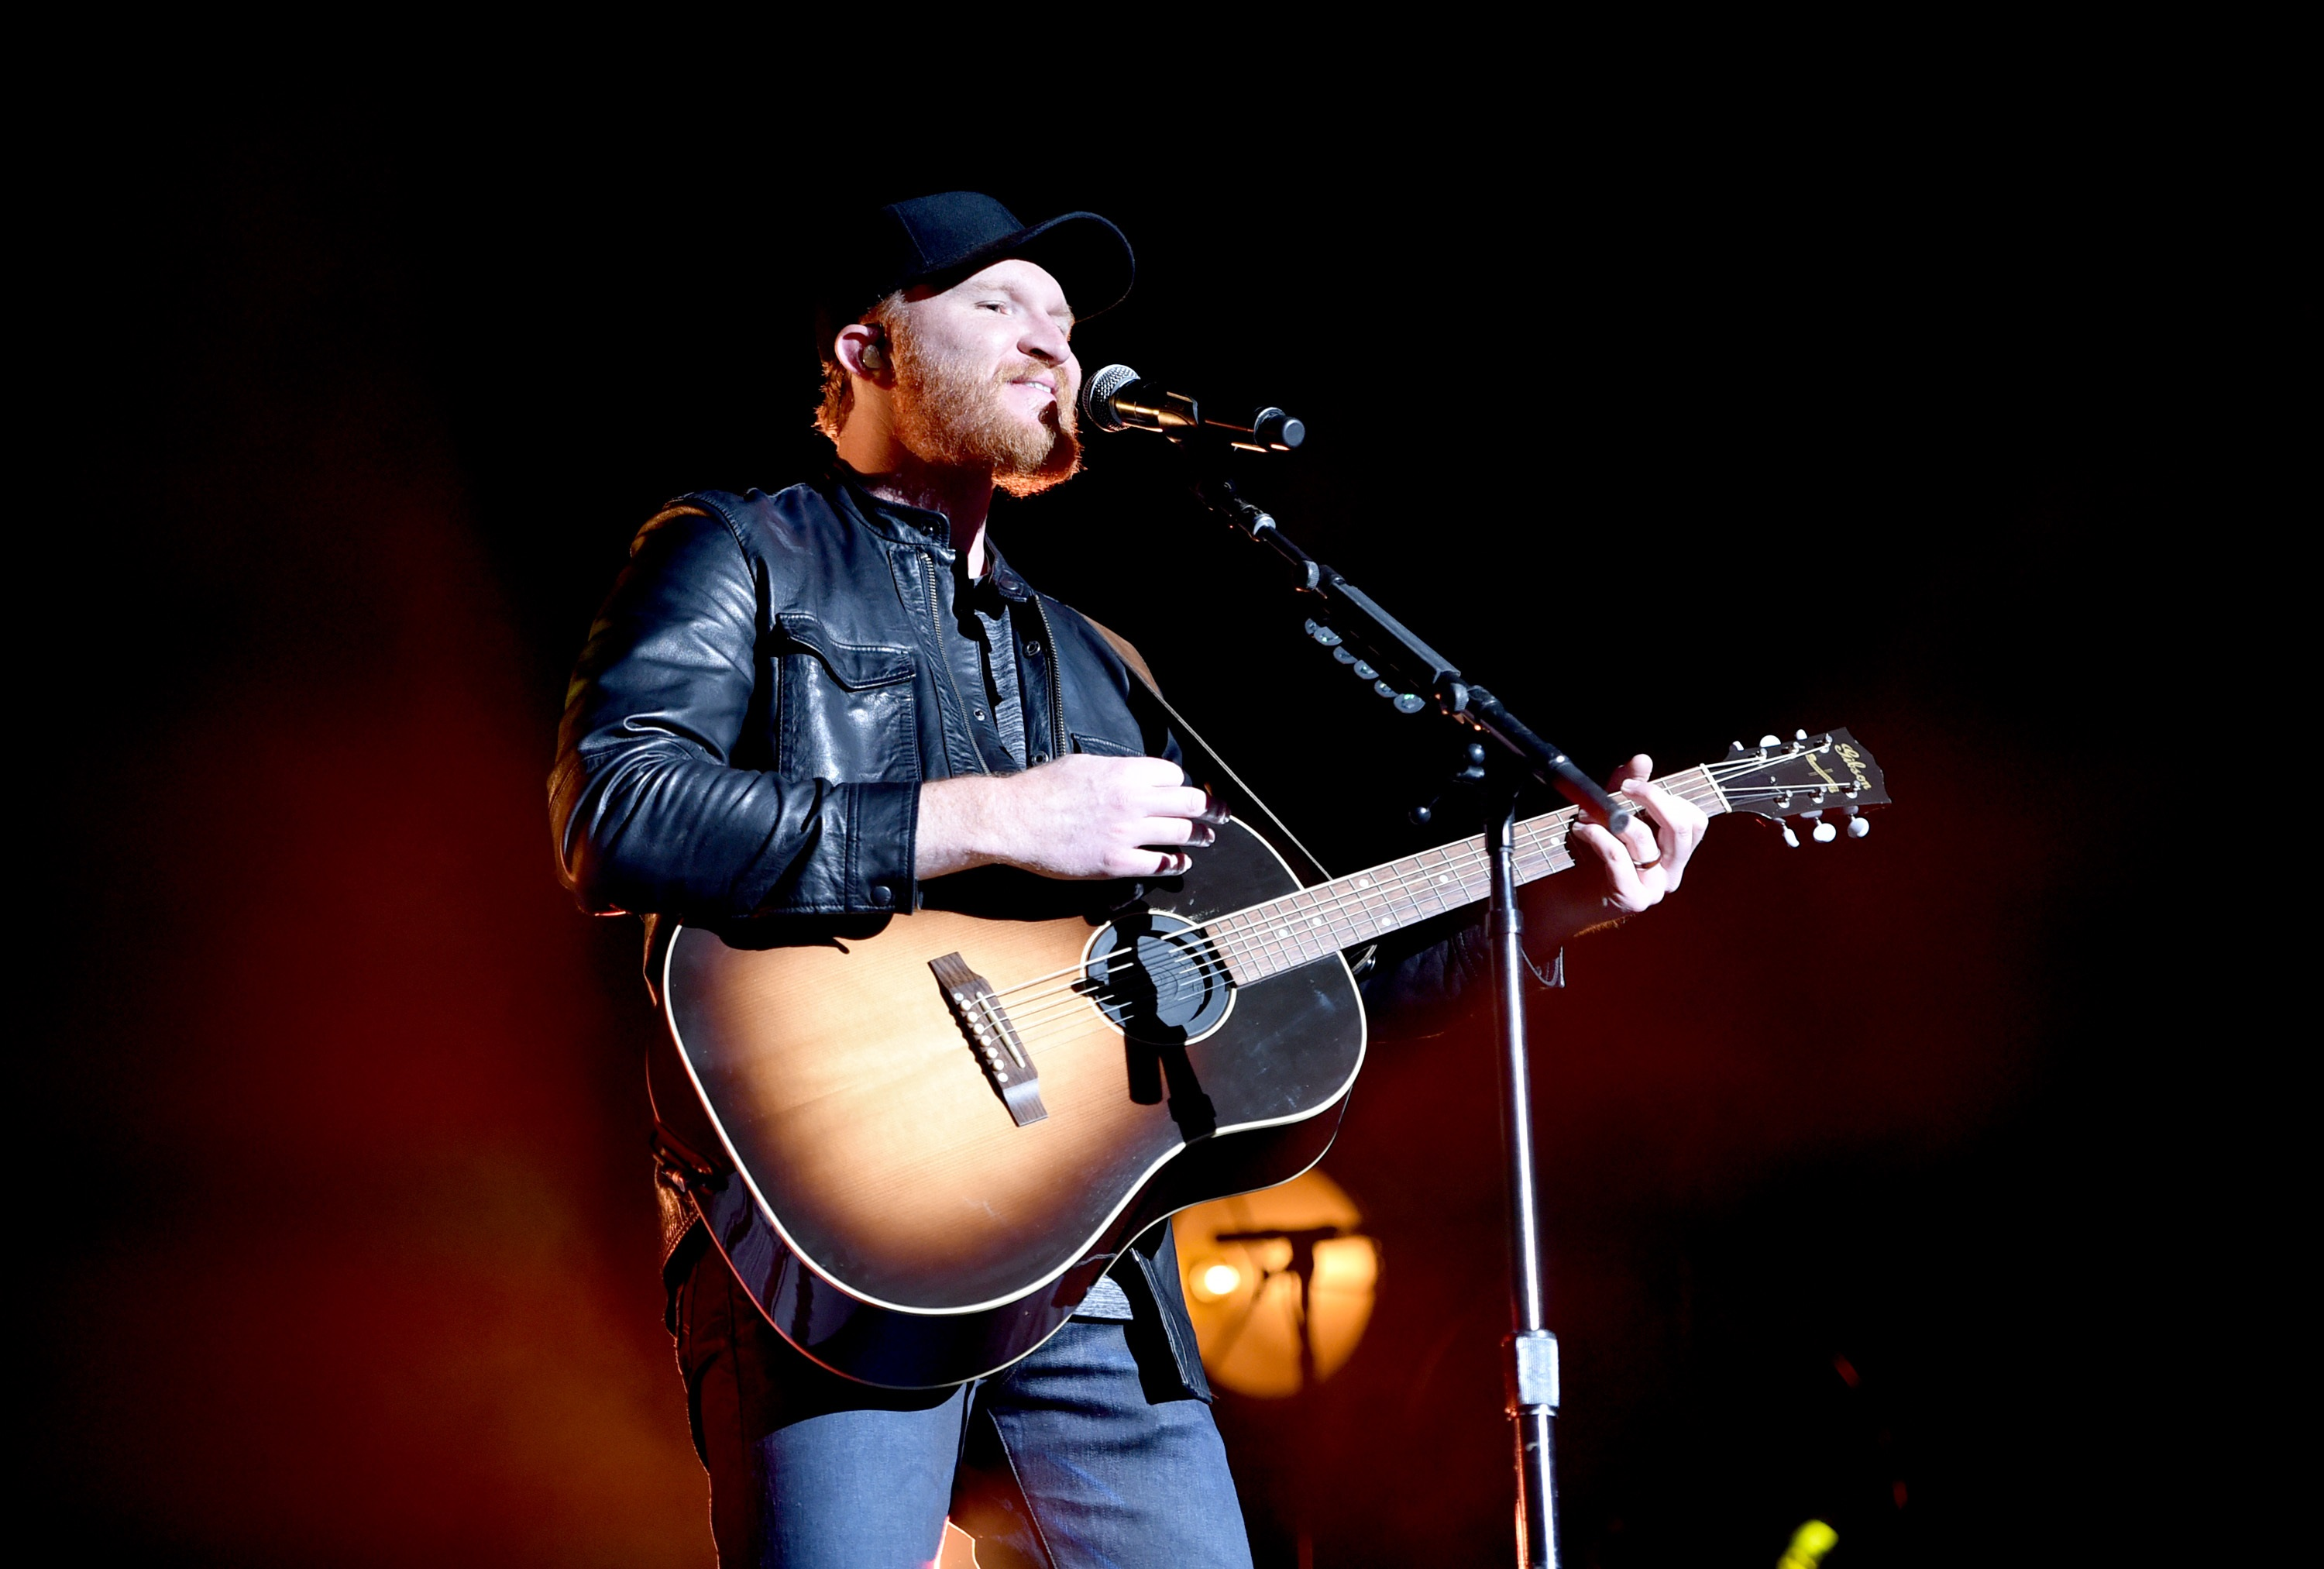 Eric Paslay; Photo by John Shearer/Getty Images for Sony Music Nashville